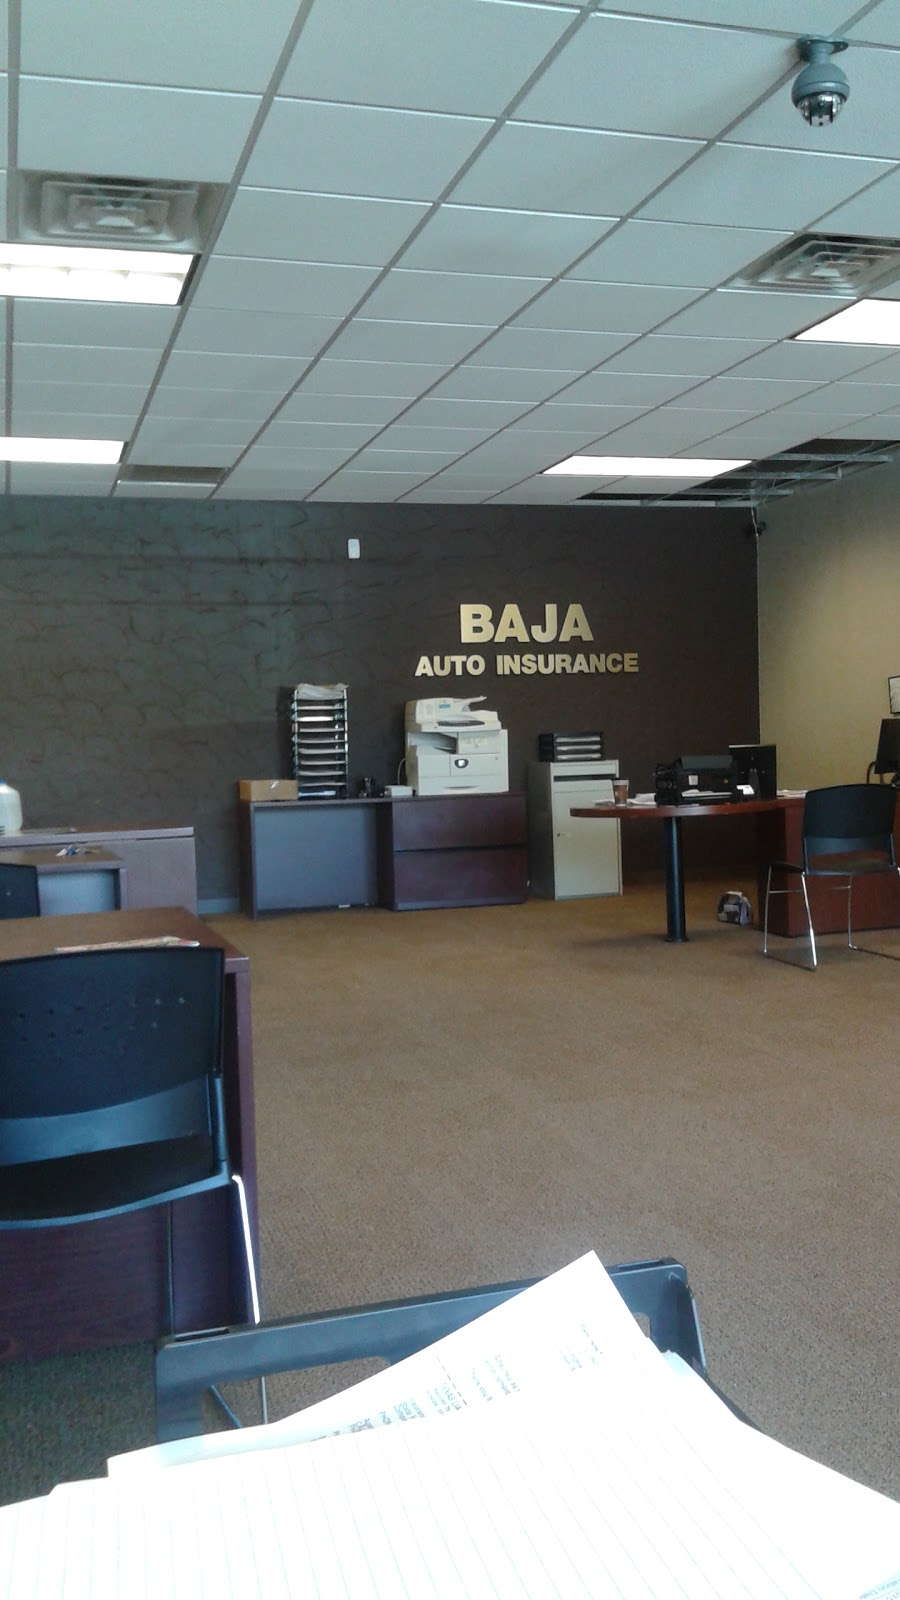 Baja Auto Insurance | insurance agency | 3524 E Lancaster Ave Ste F, Fort Worth, TX 76103, USA | 8178547020 OR +1 817-854-7020